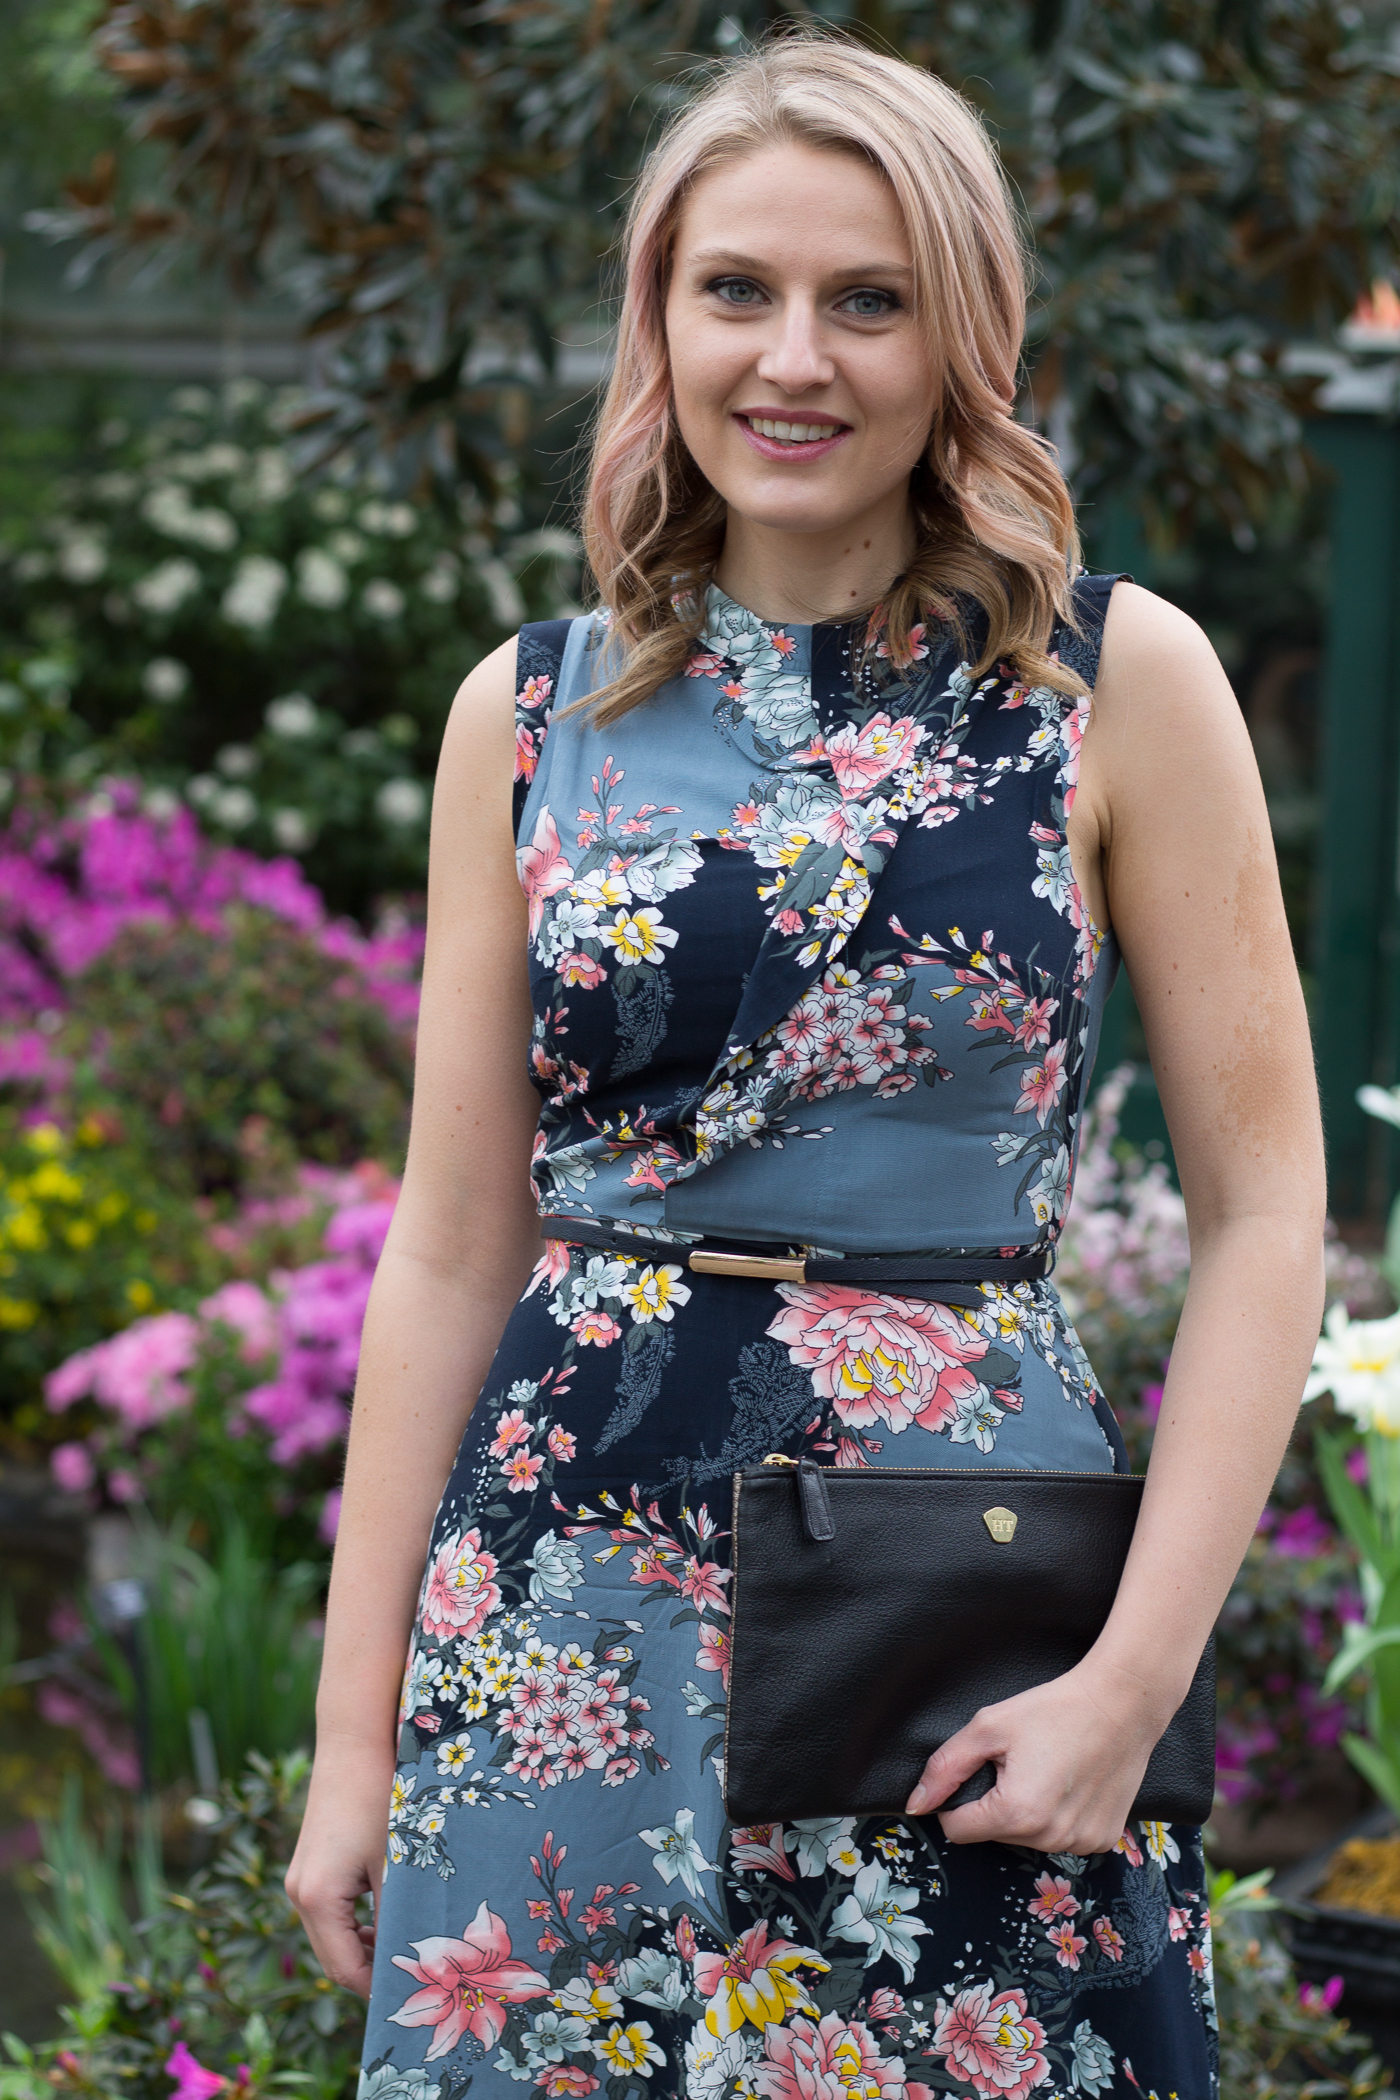 How to wear a floral dress to the office